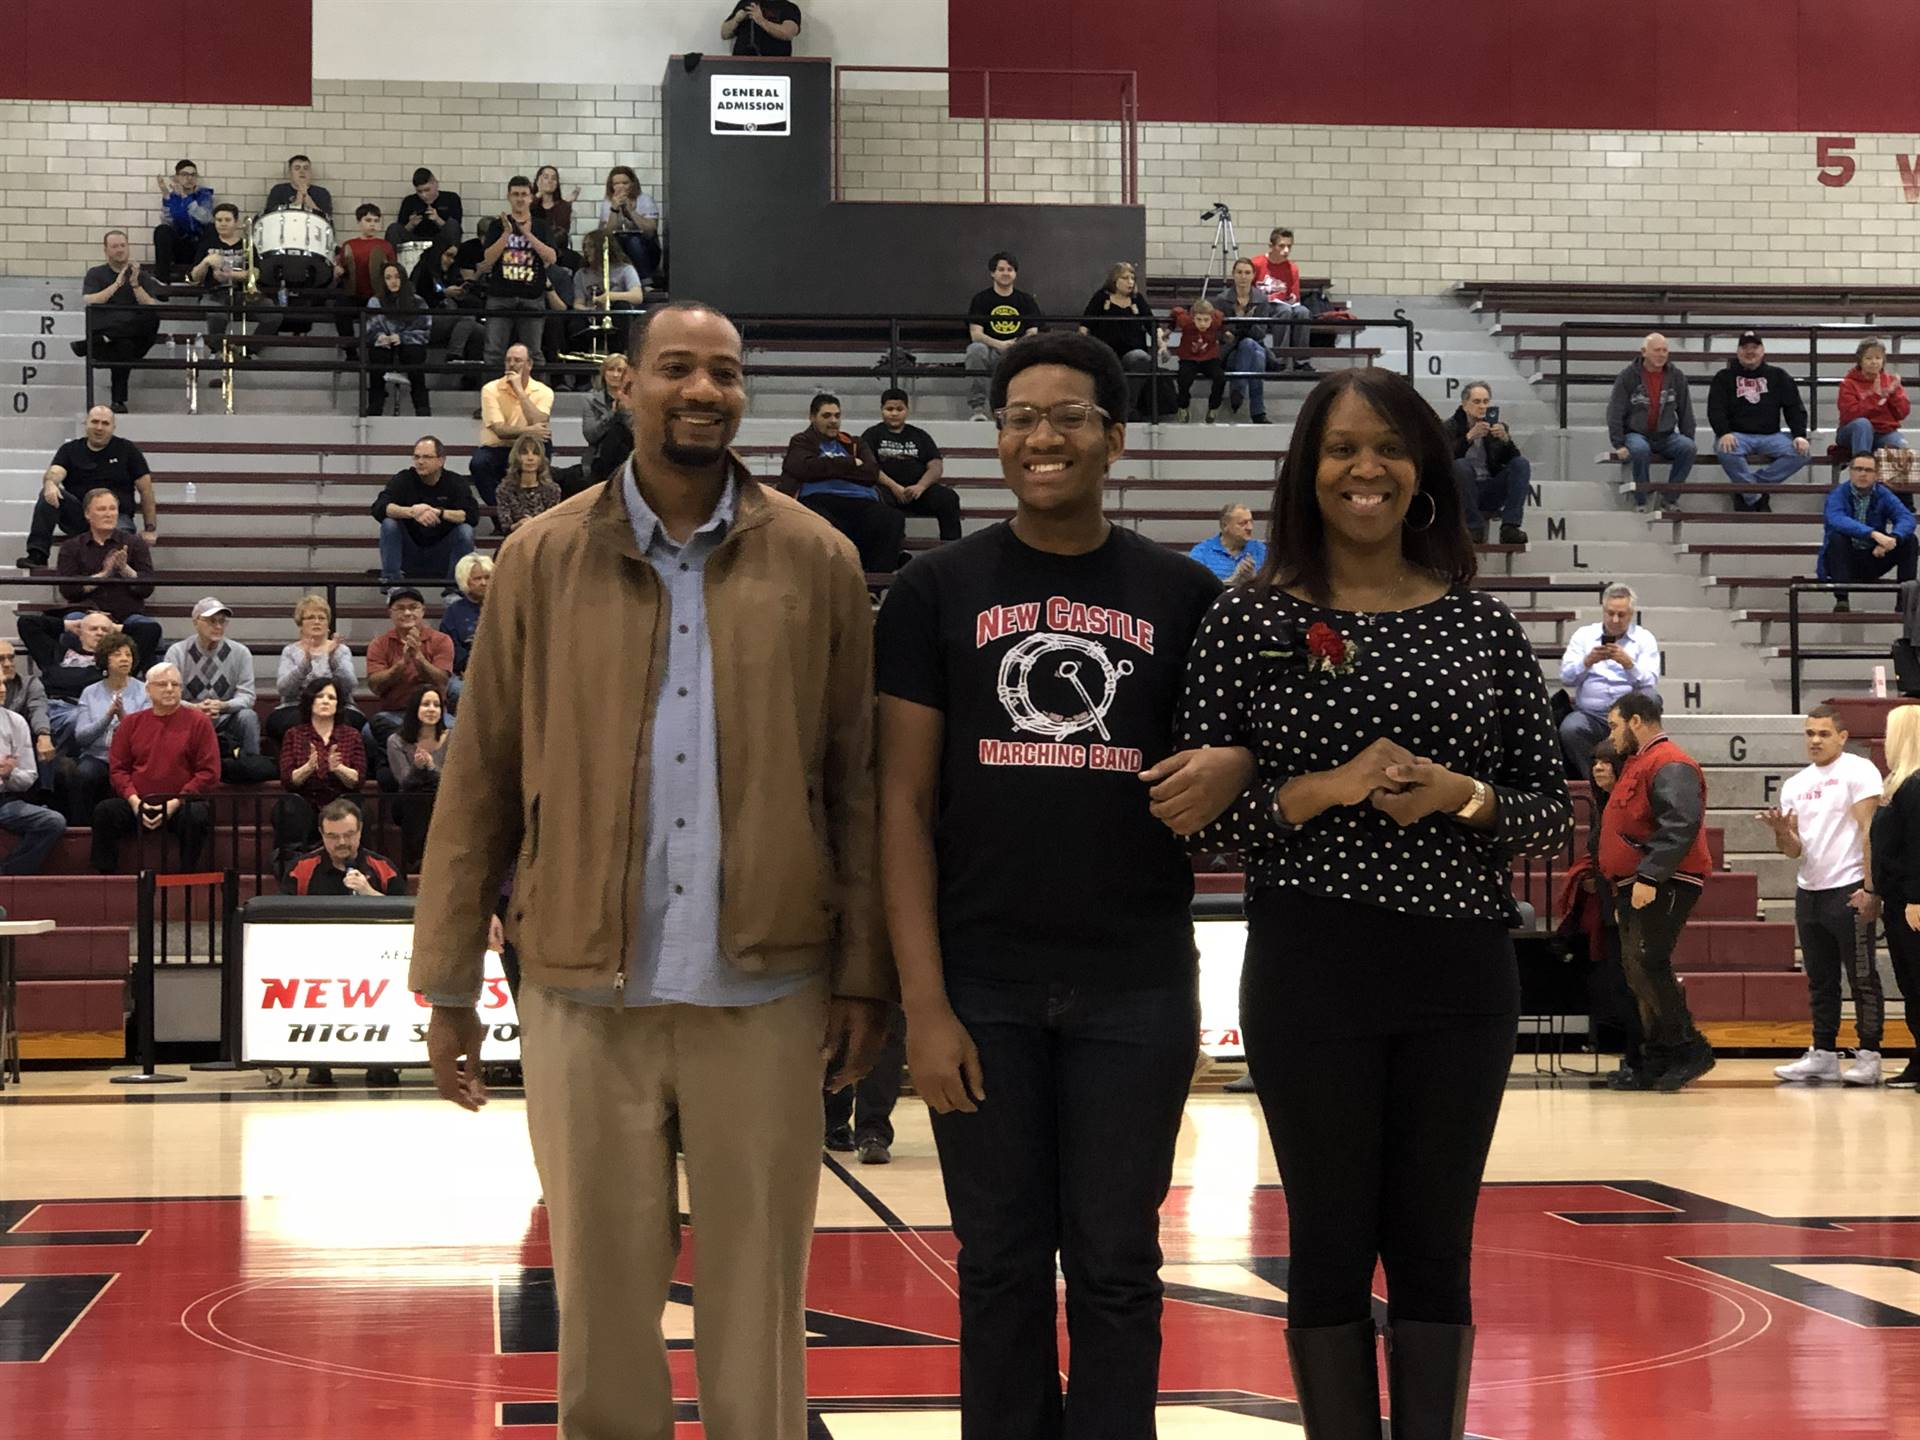 Eric Groves, escorted by Erika and Robert Groves